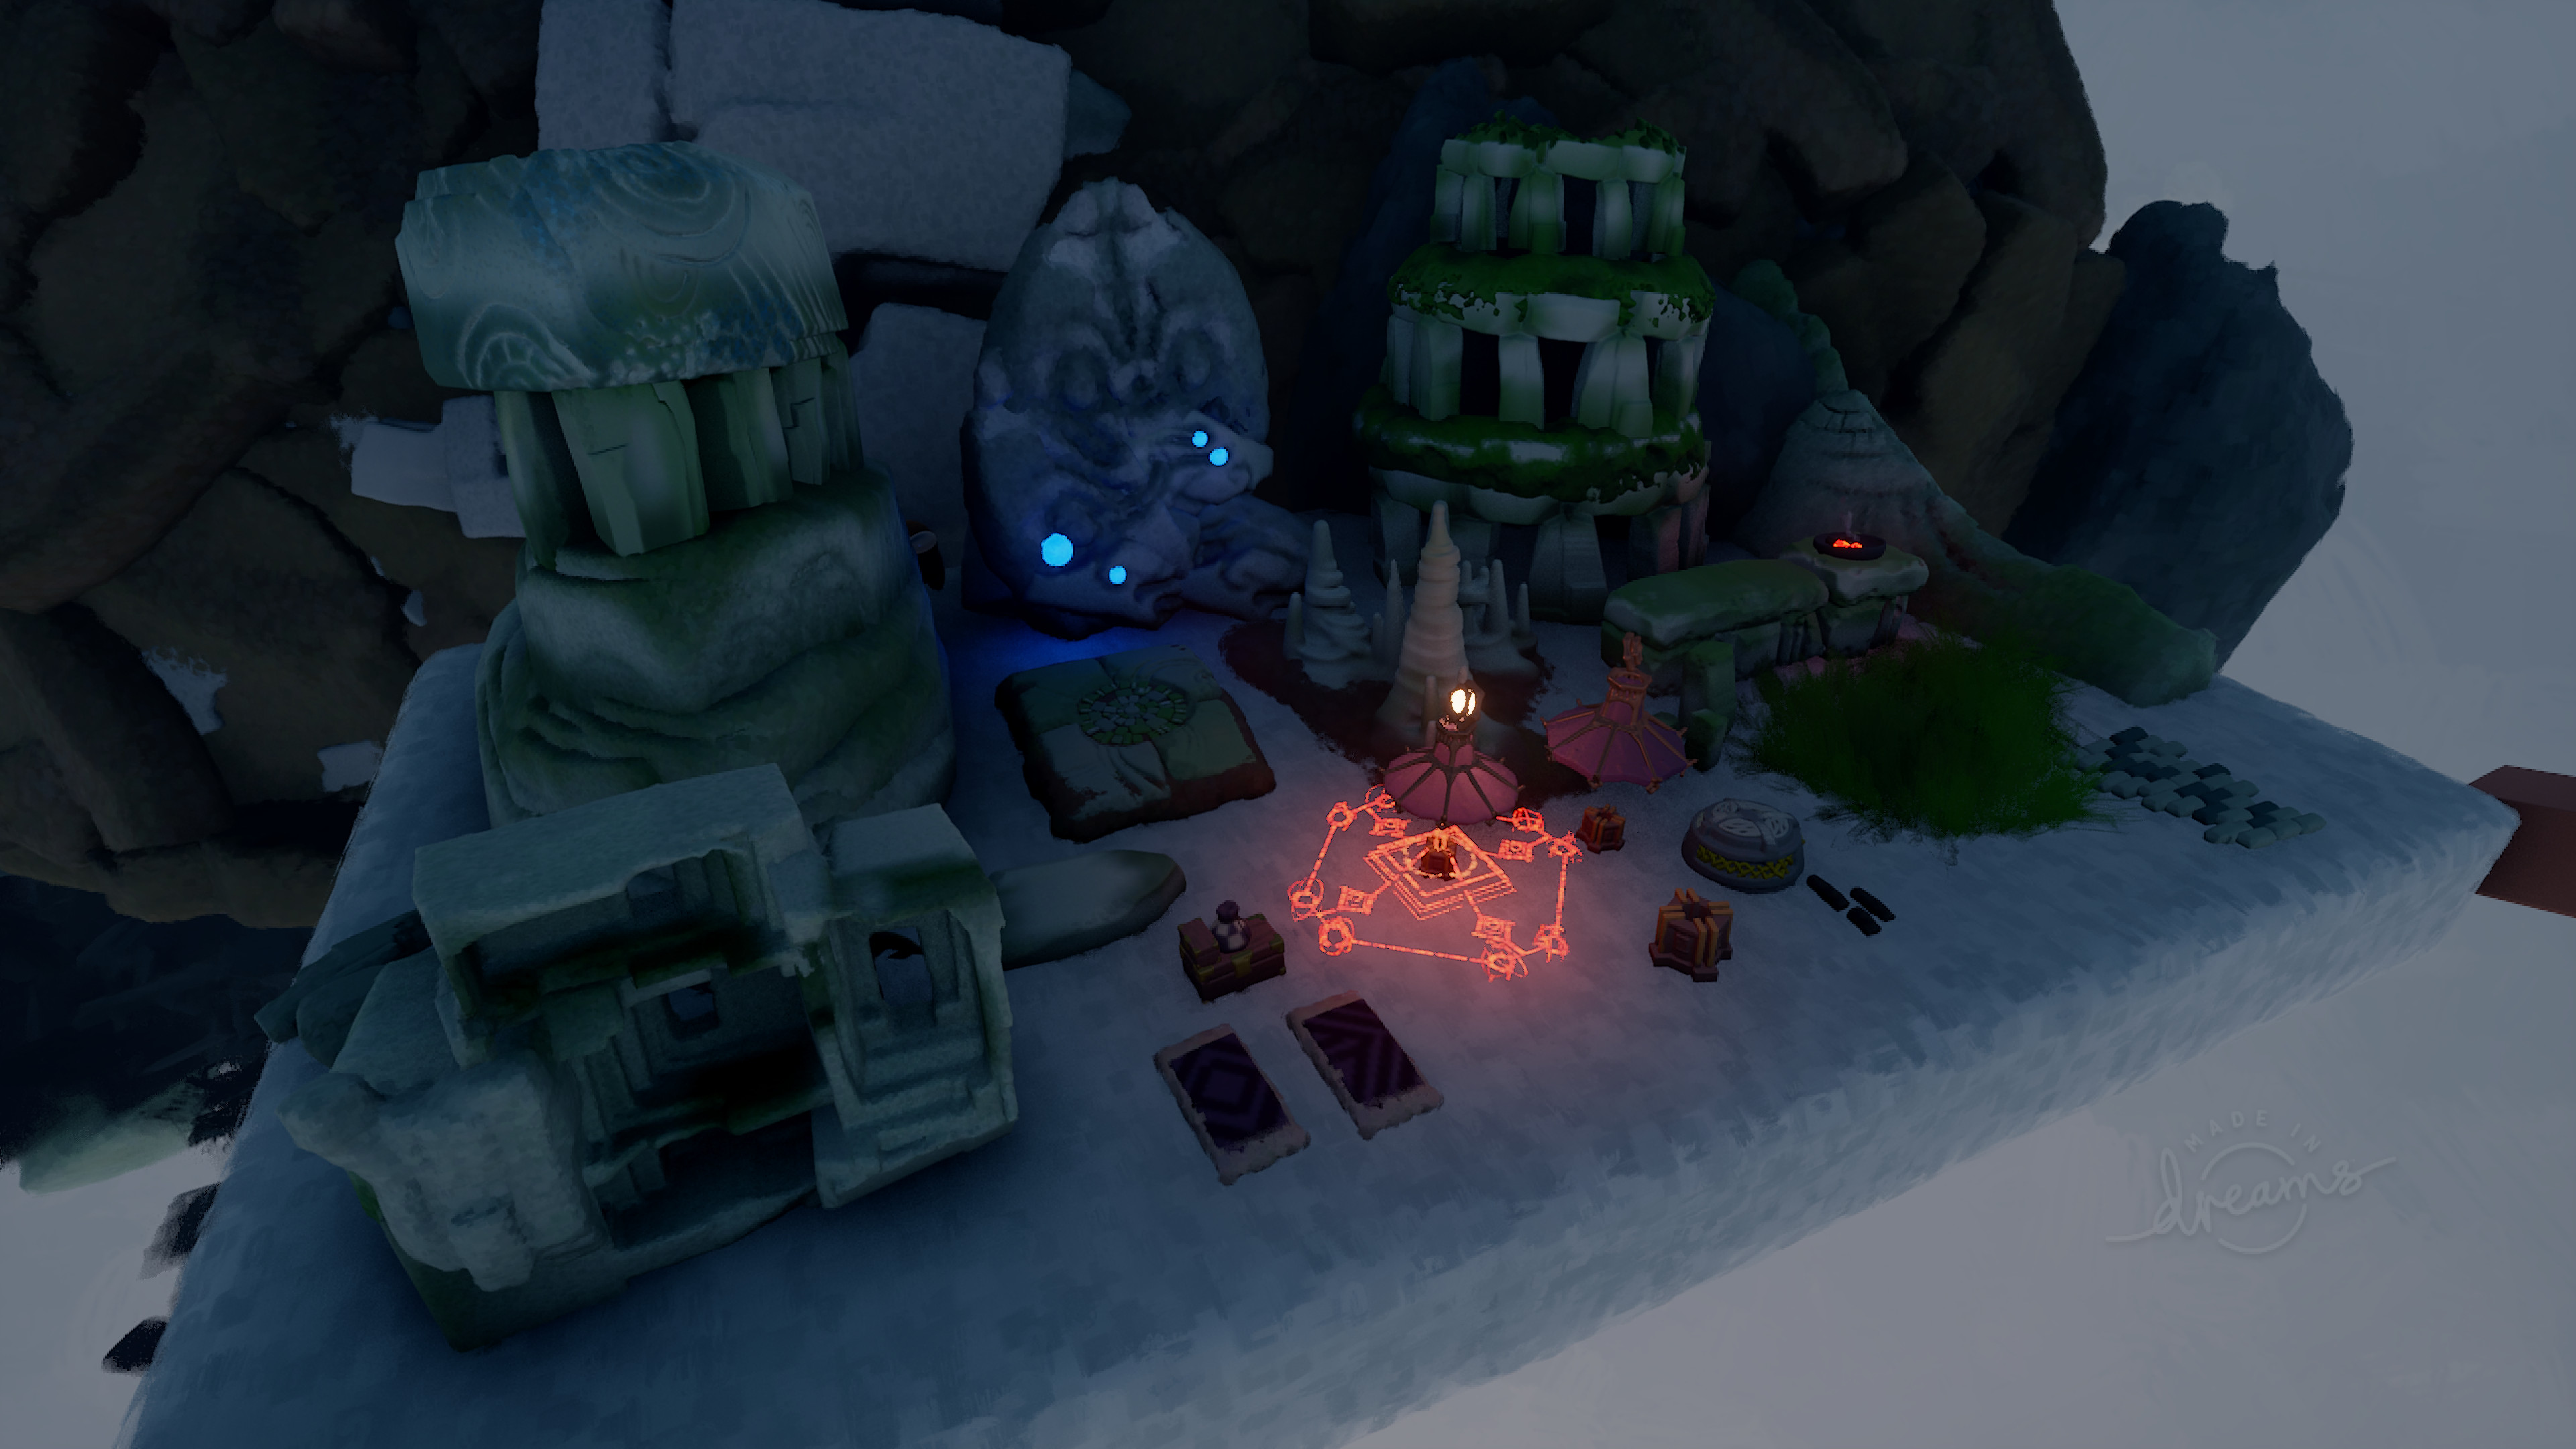 Original assets sculpted and reused throughout the scene